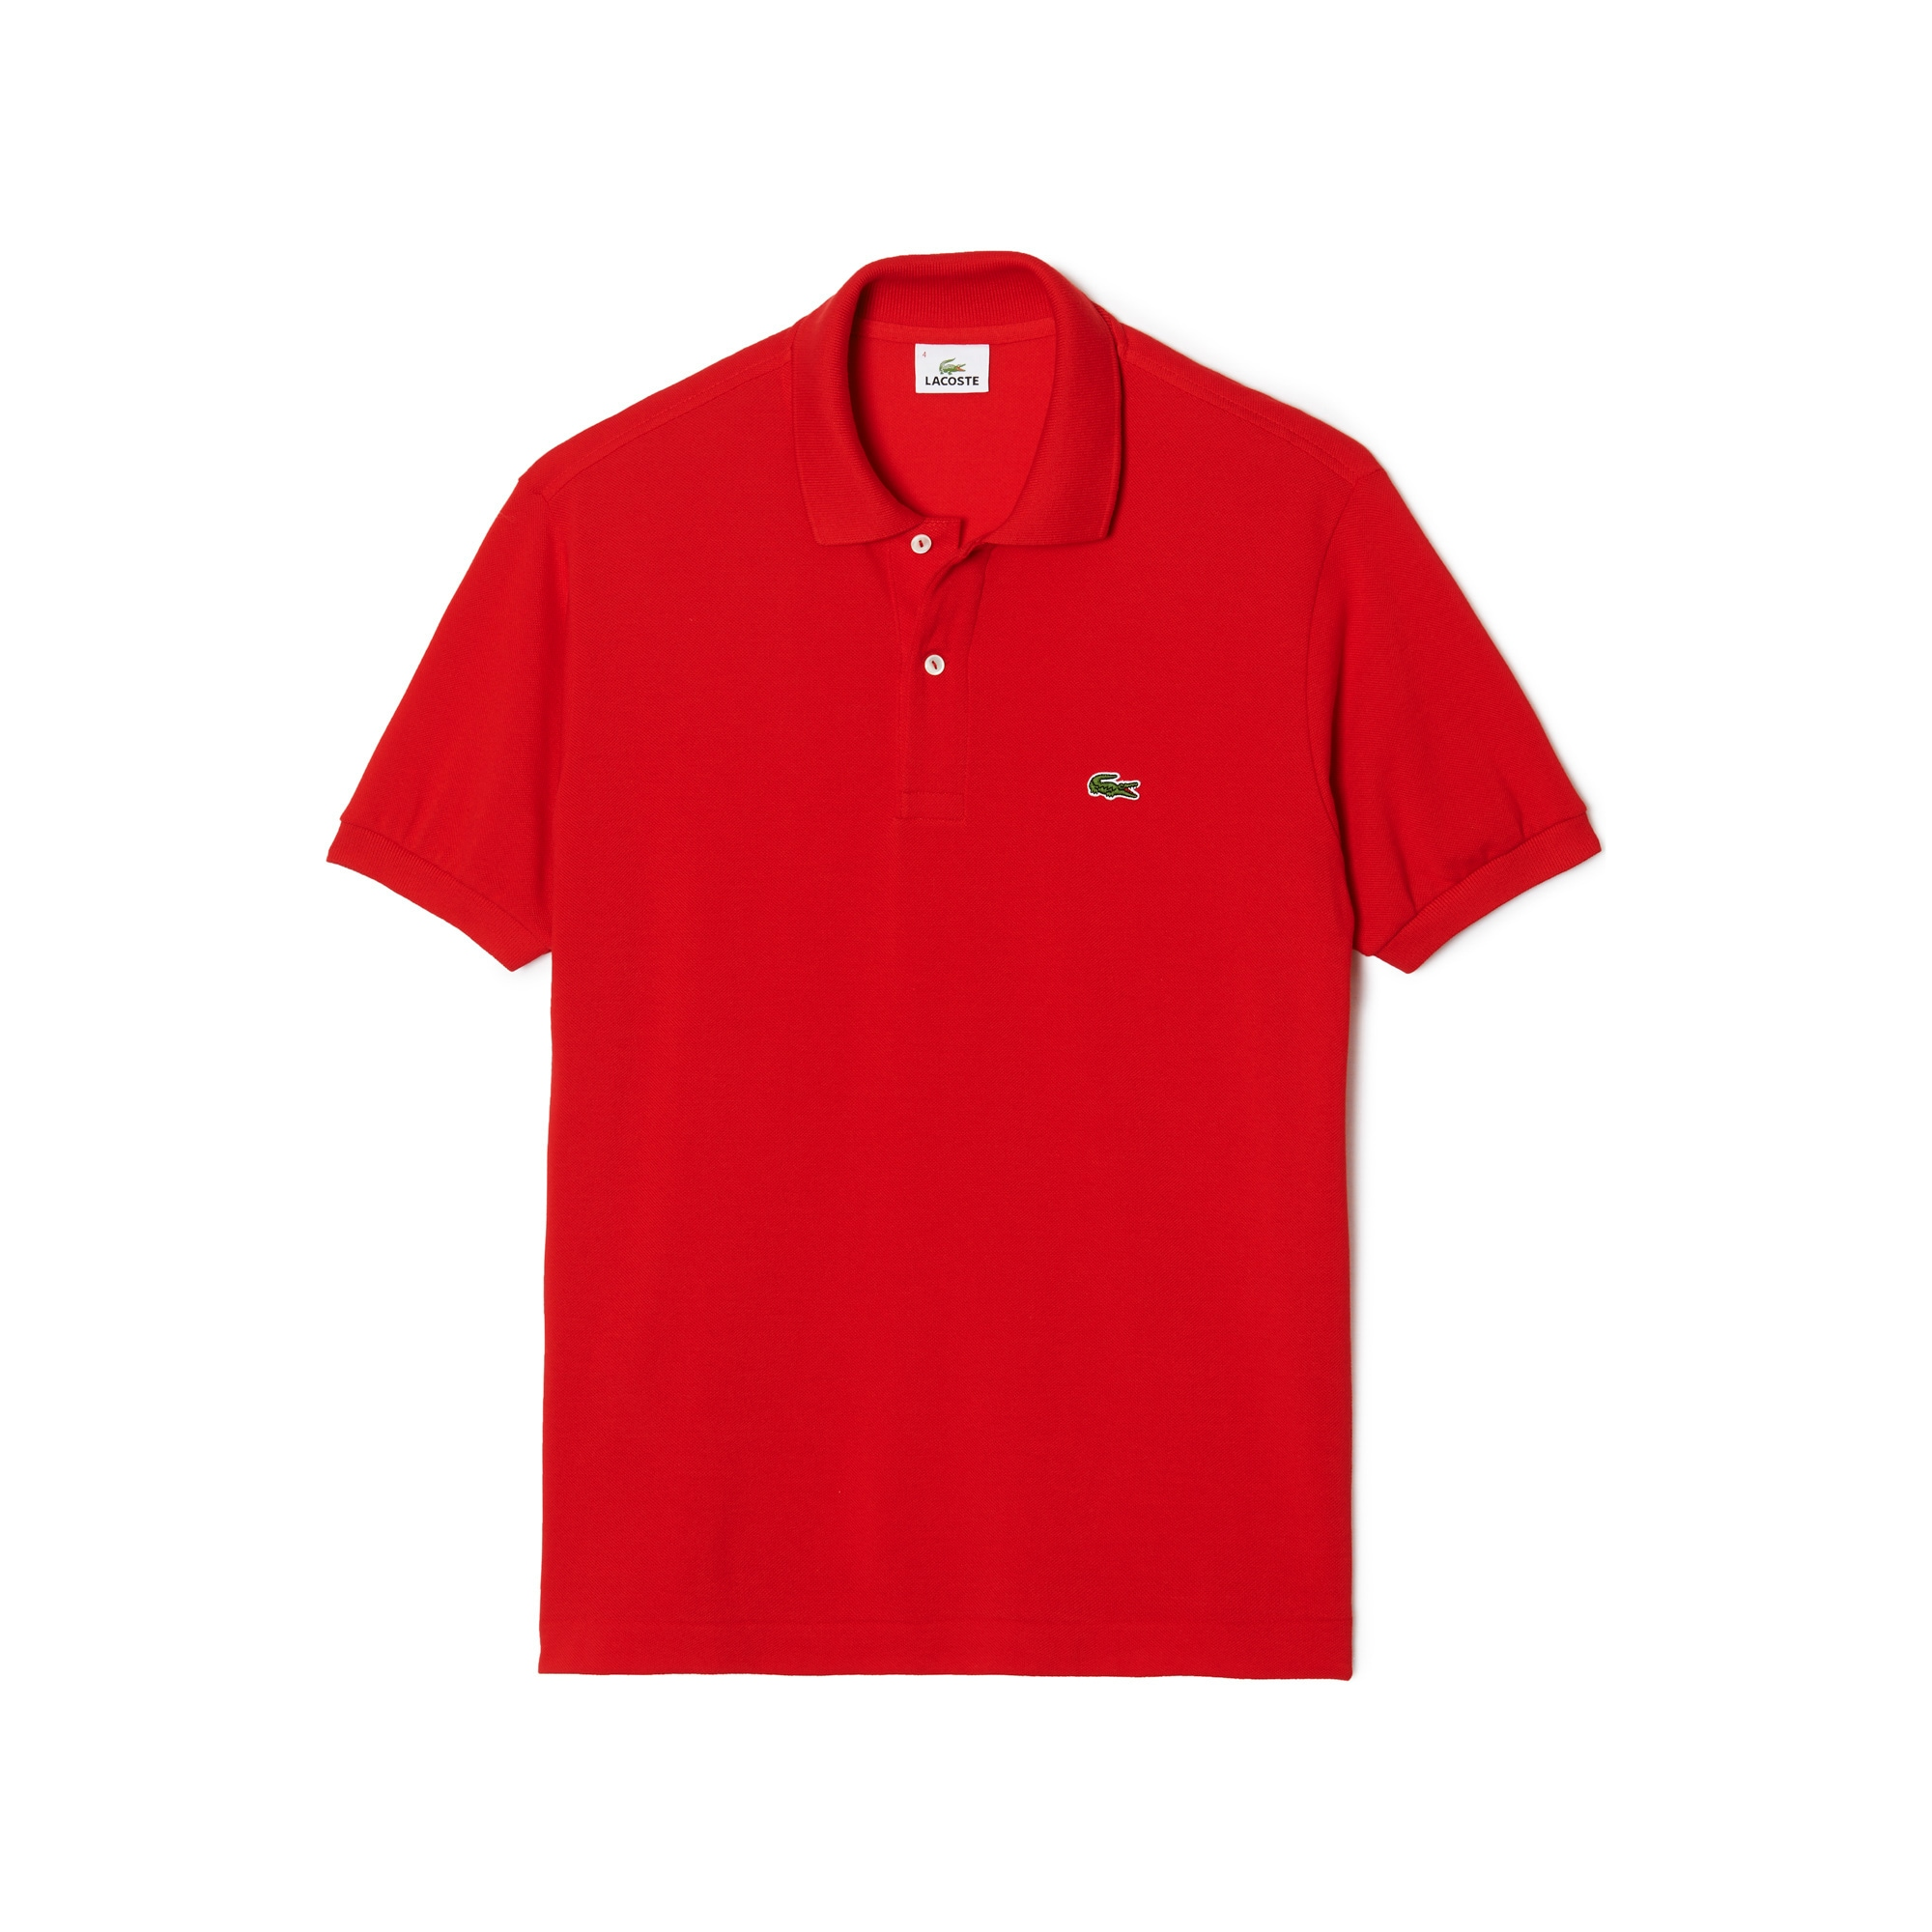 Men's Lacoste Tall Fit Cotton Polo Shirt